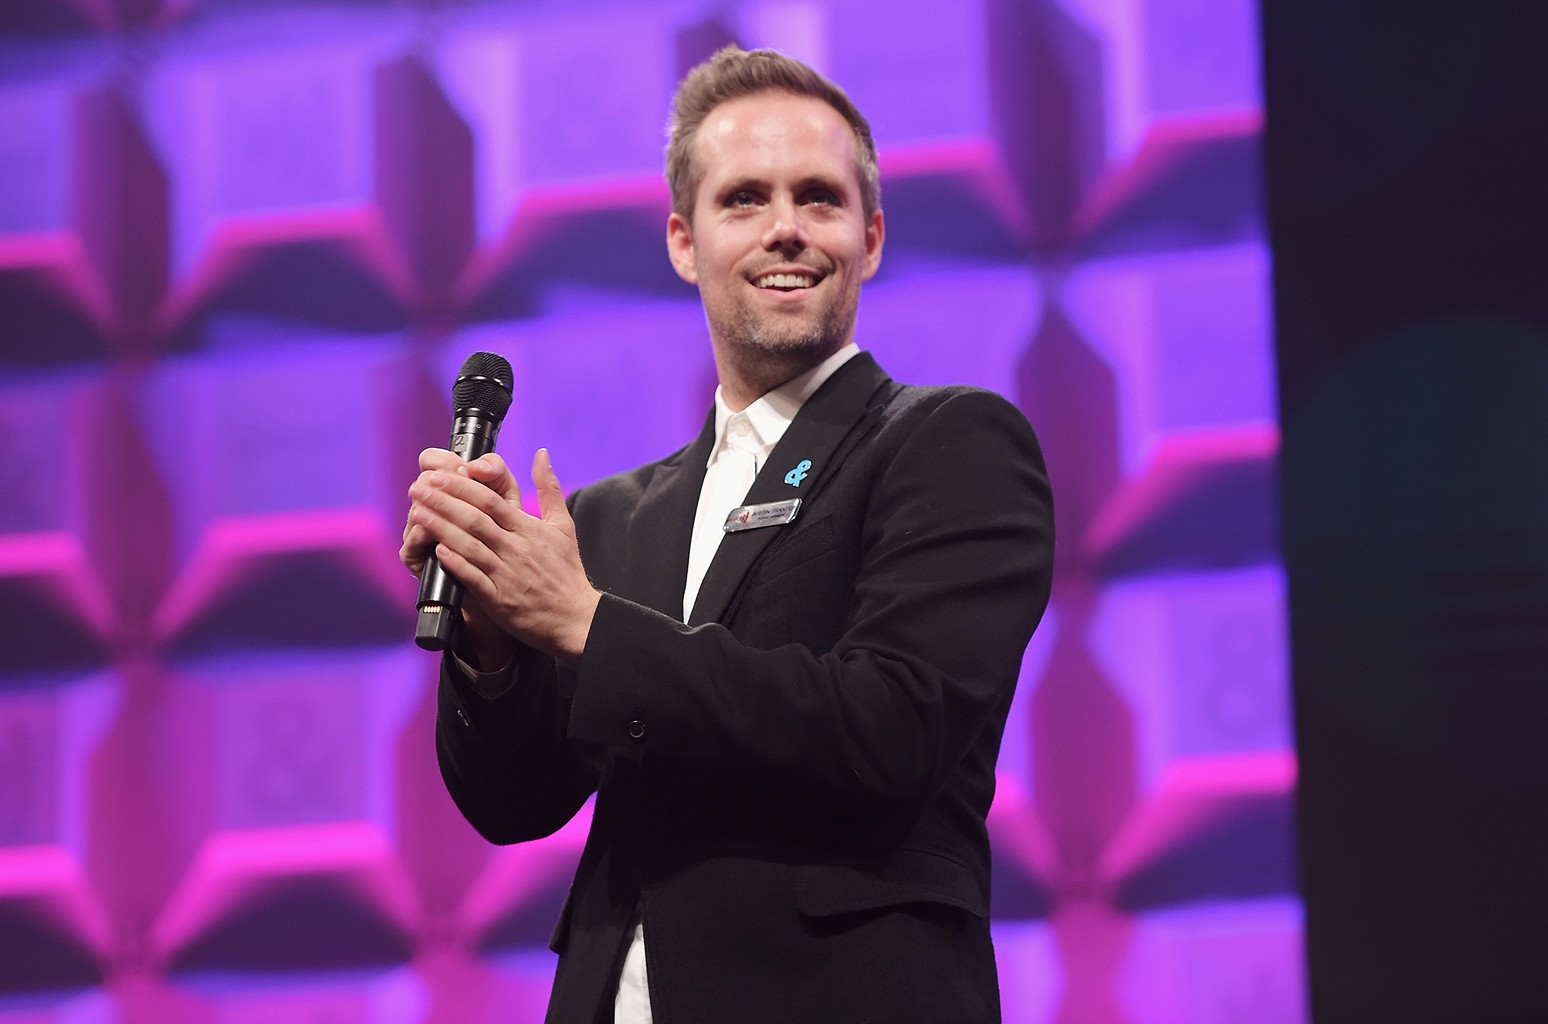 Justin Tranter speaks on stage at the 28th Annual GLAAD Media Awards at The Hilton Midtown on May 6, 2017 in New York City.